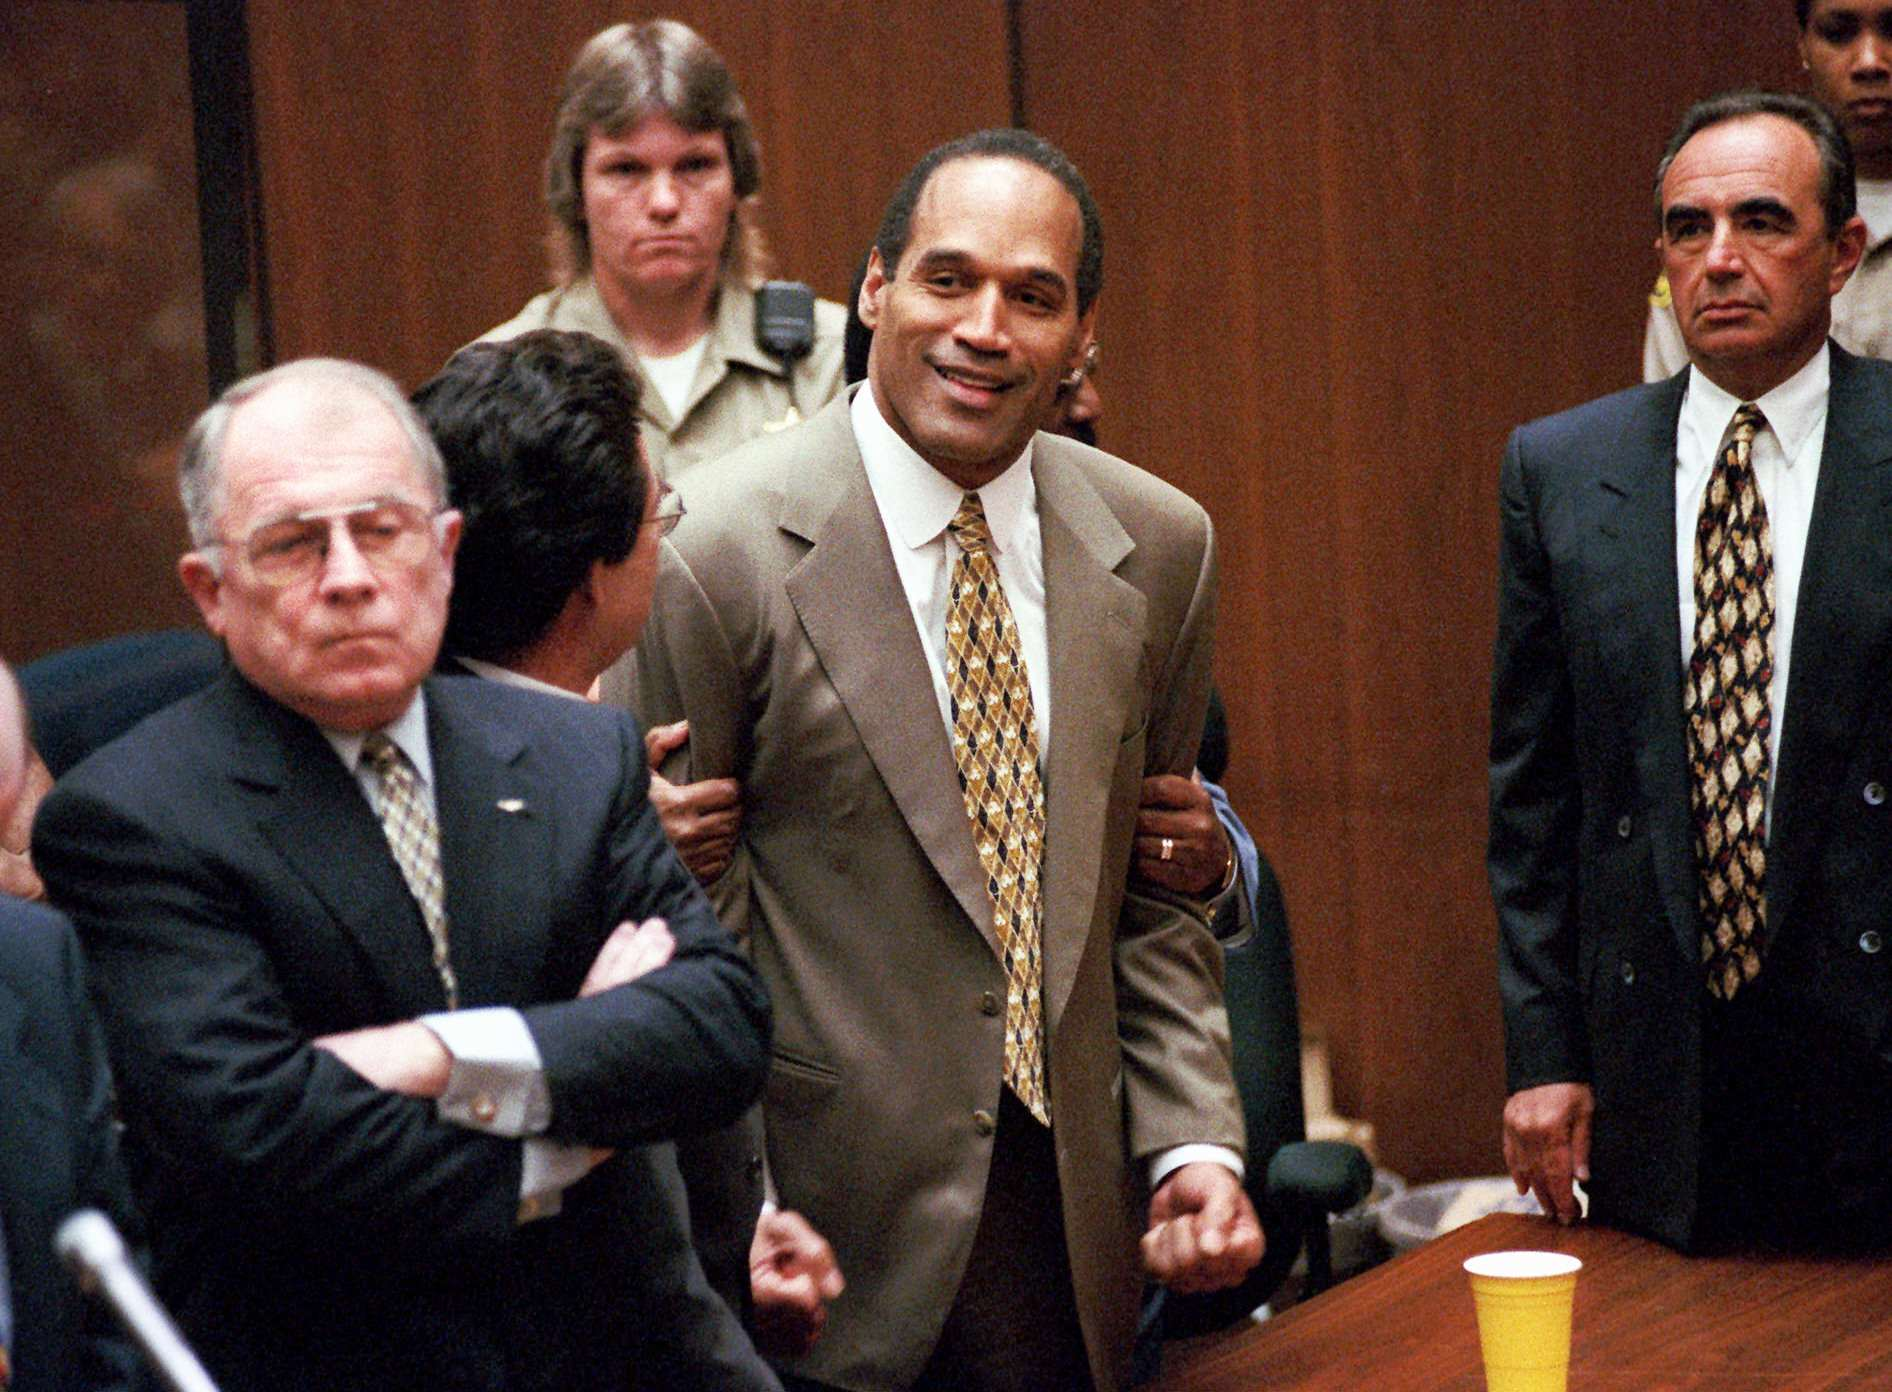 OJ Simpsons Former Manager Says He Knows Who Committed The Murders oj2